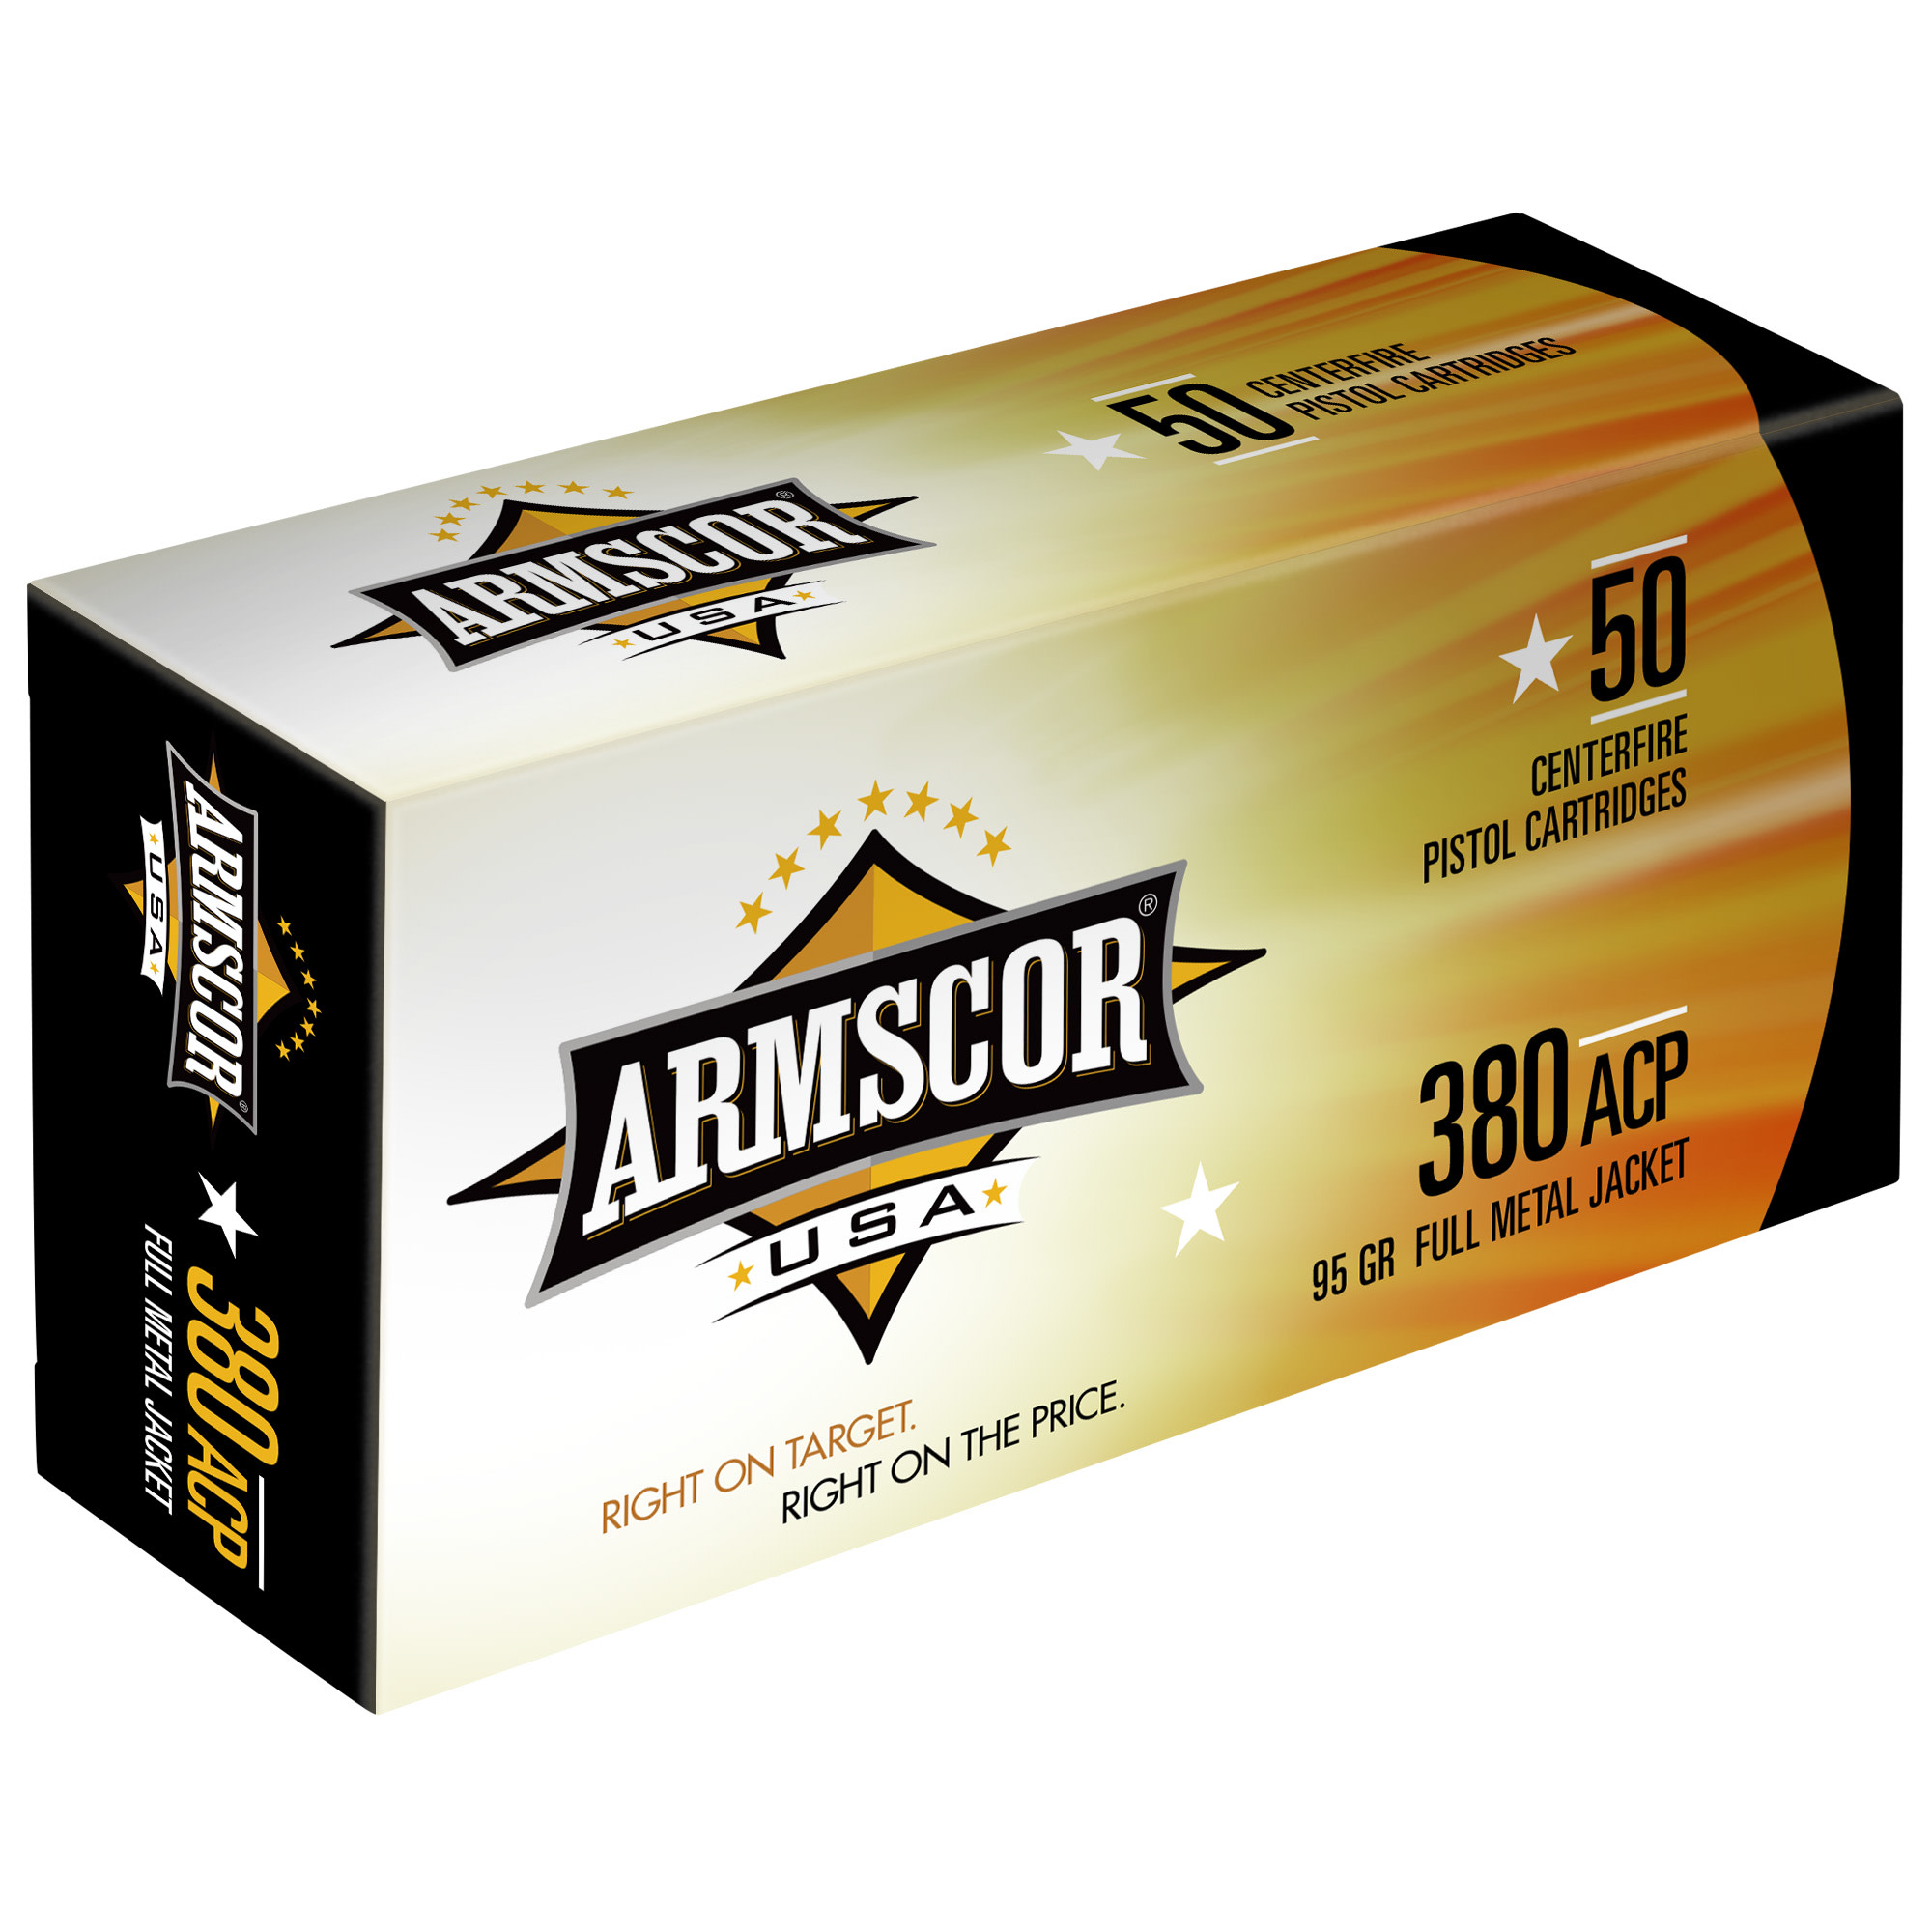 Armscor USA Ammunition 380 Auto (ACP) 95 Grain Full Metal Jacket Per 50